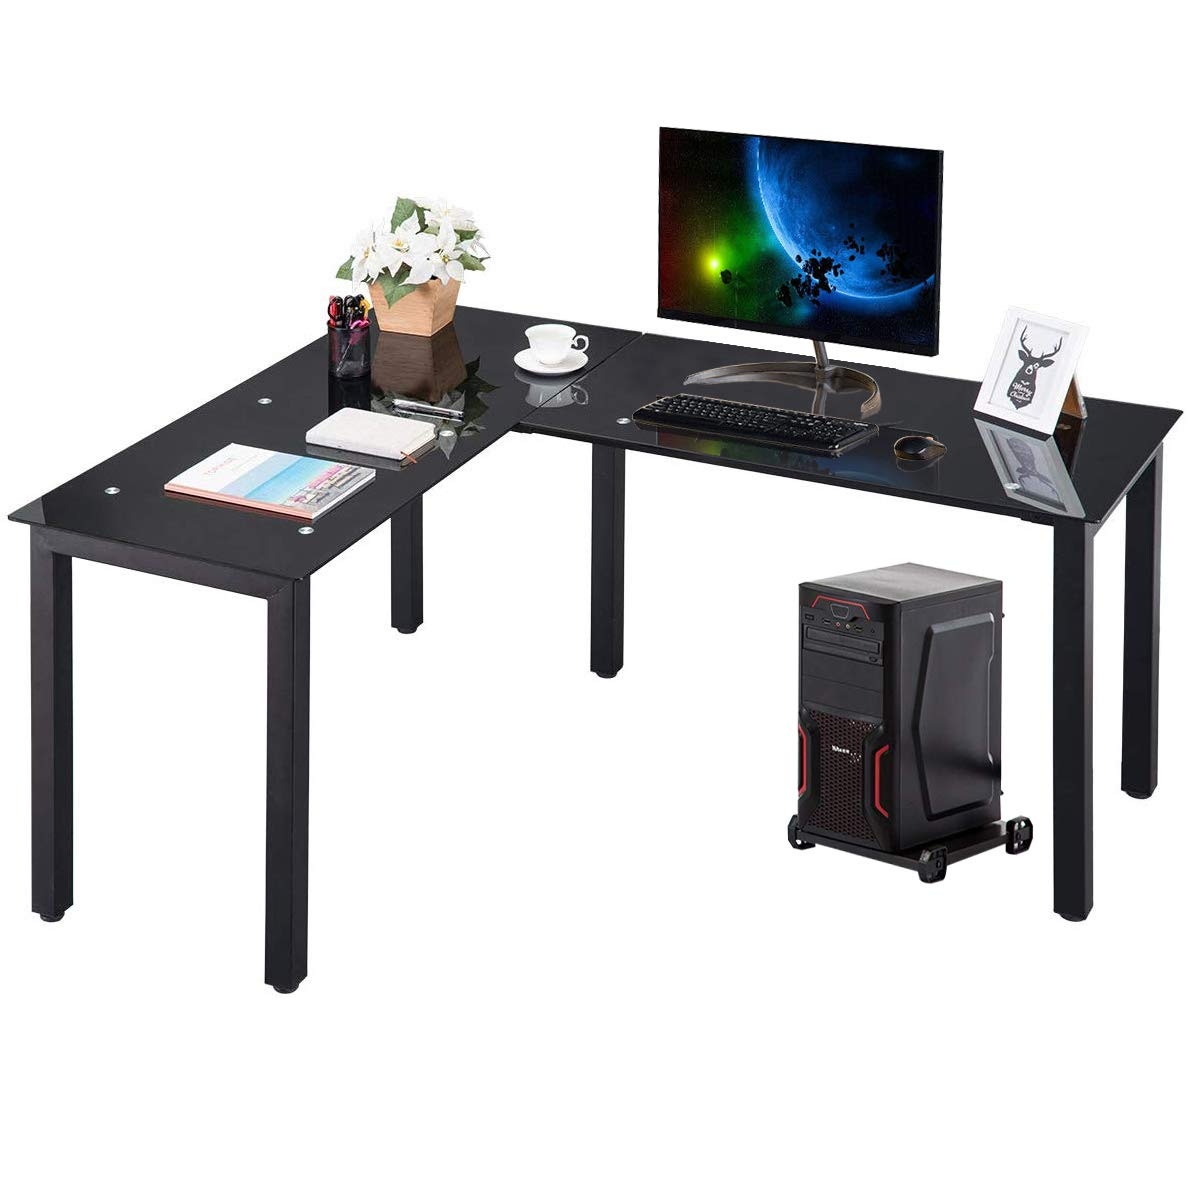 HM HOME L-Shape Home Office Corner Computer Desk PC Laptop Table Workstation with Tempered Glass Top Black